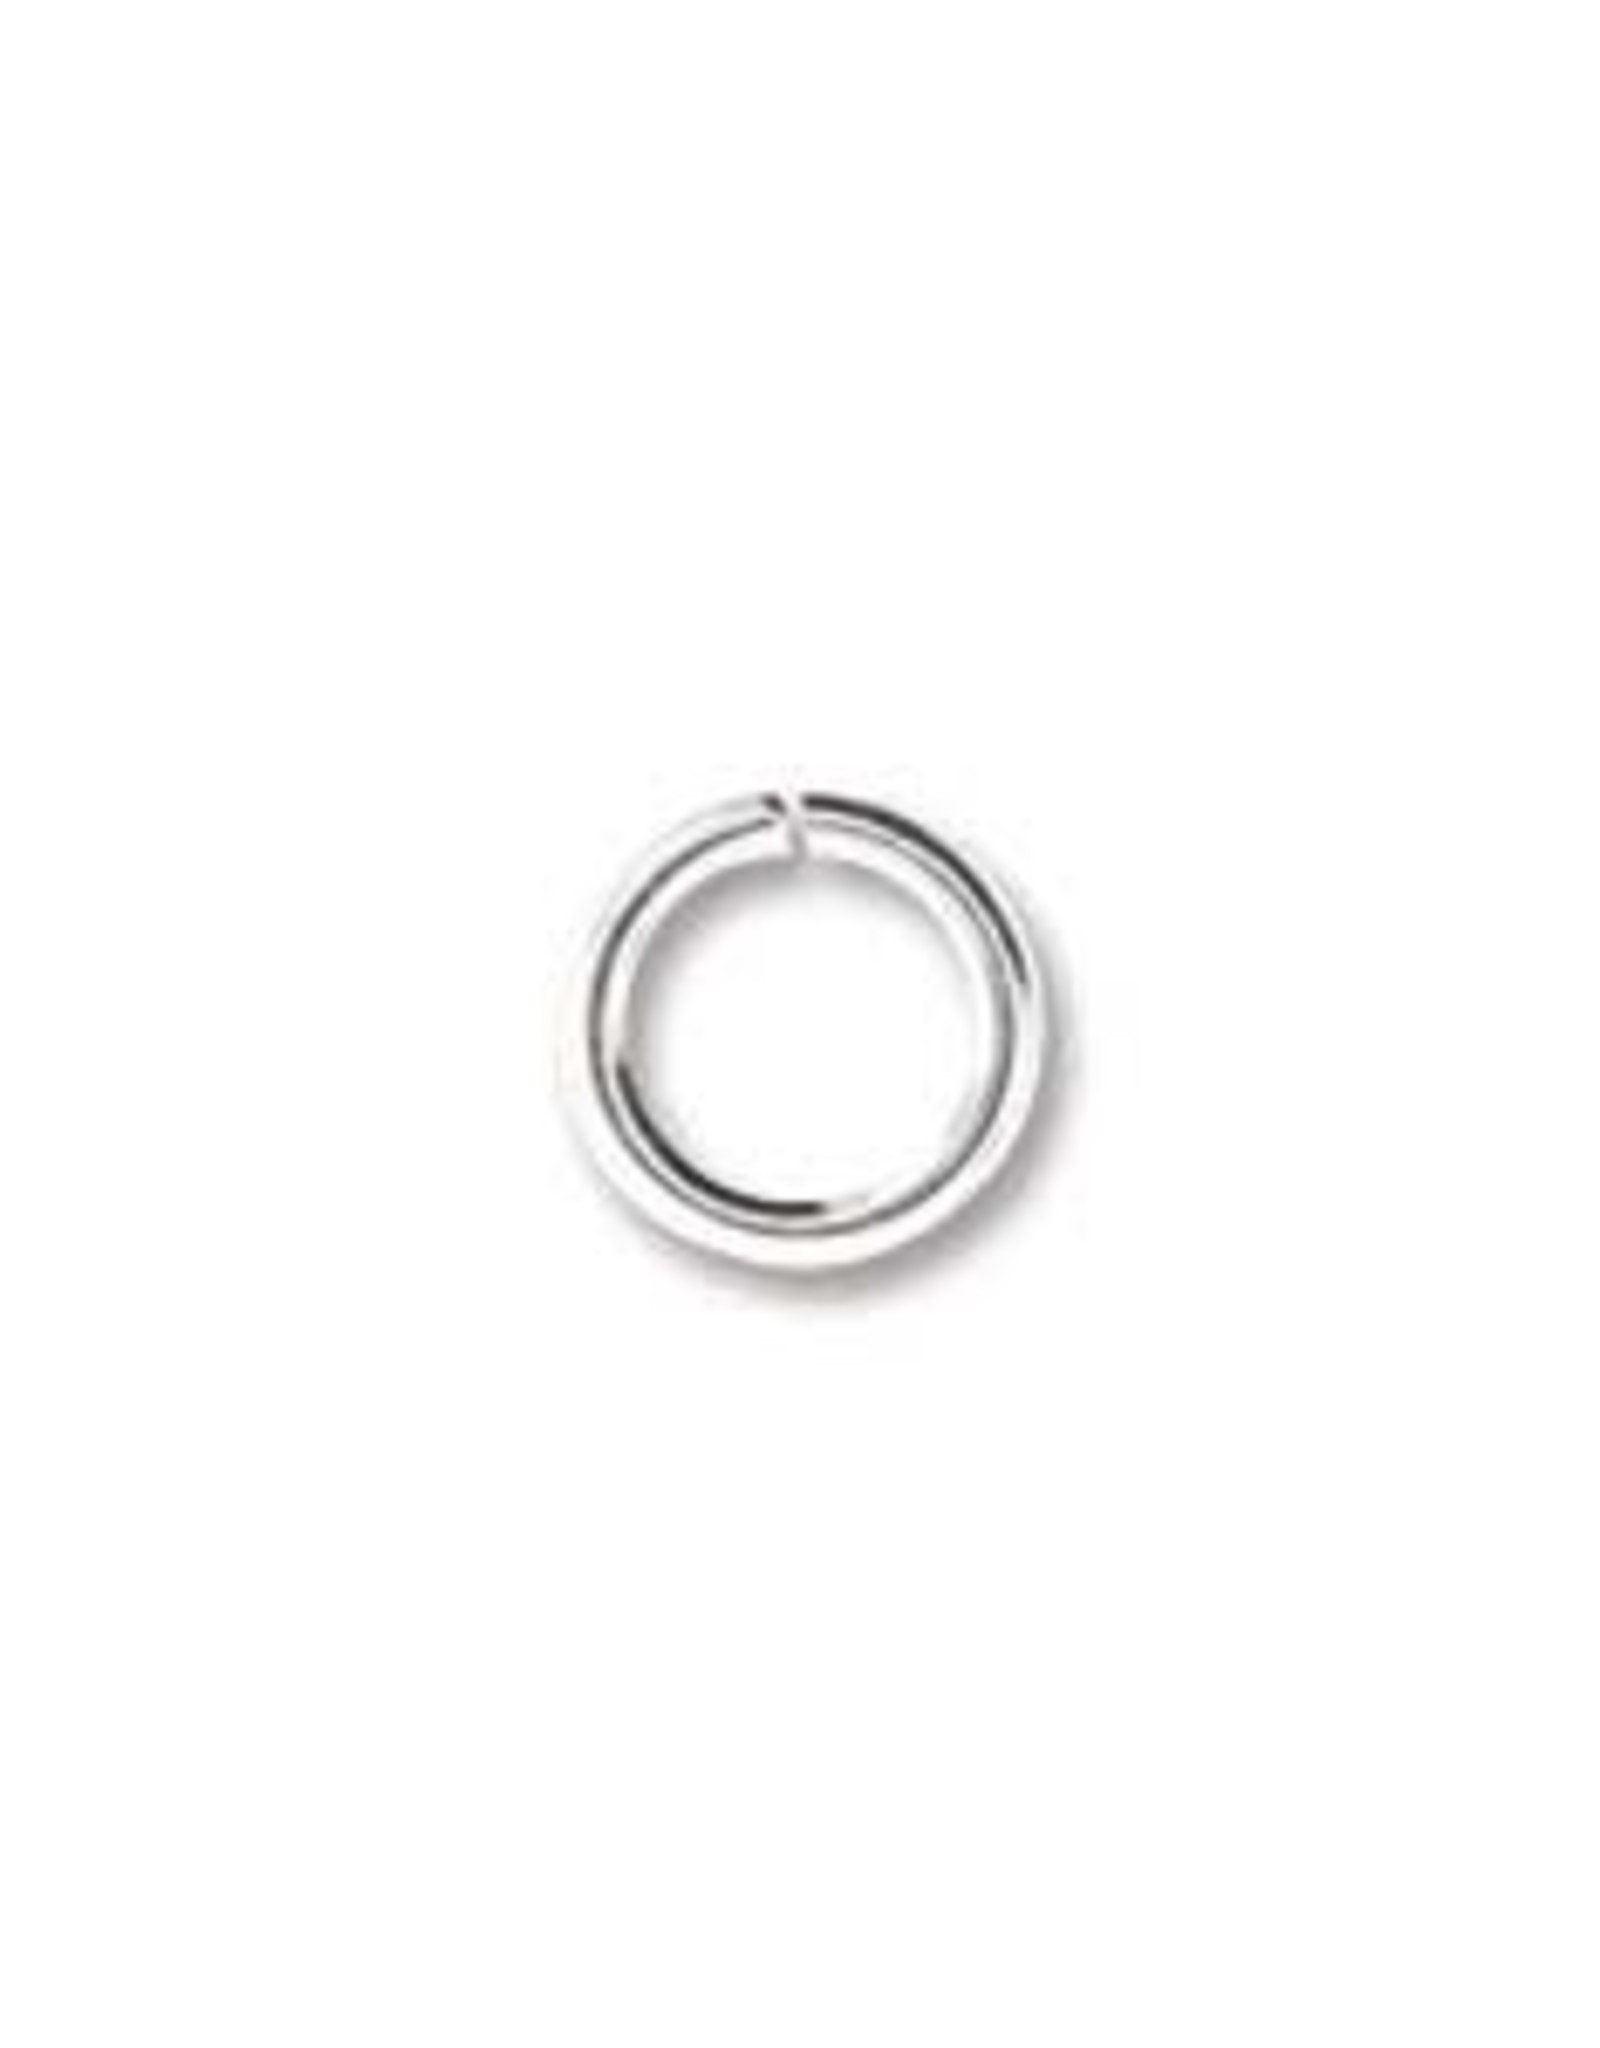 6mm Jump Ring Silver Plated Qty 144